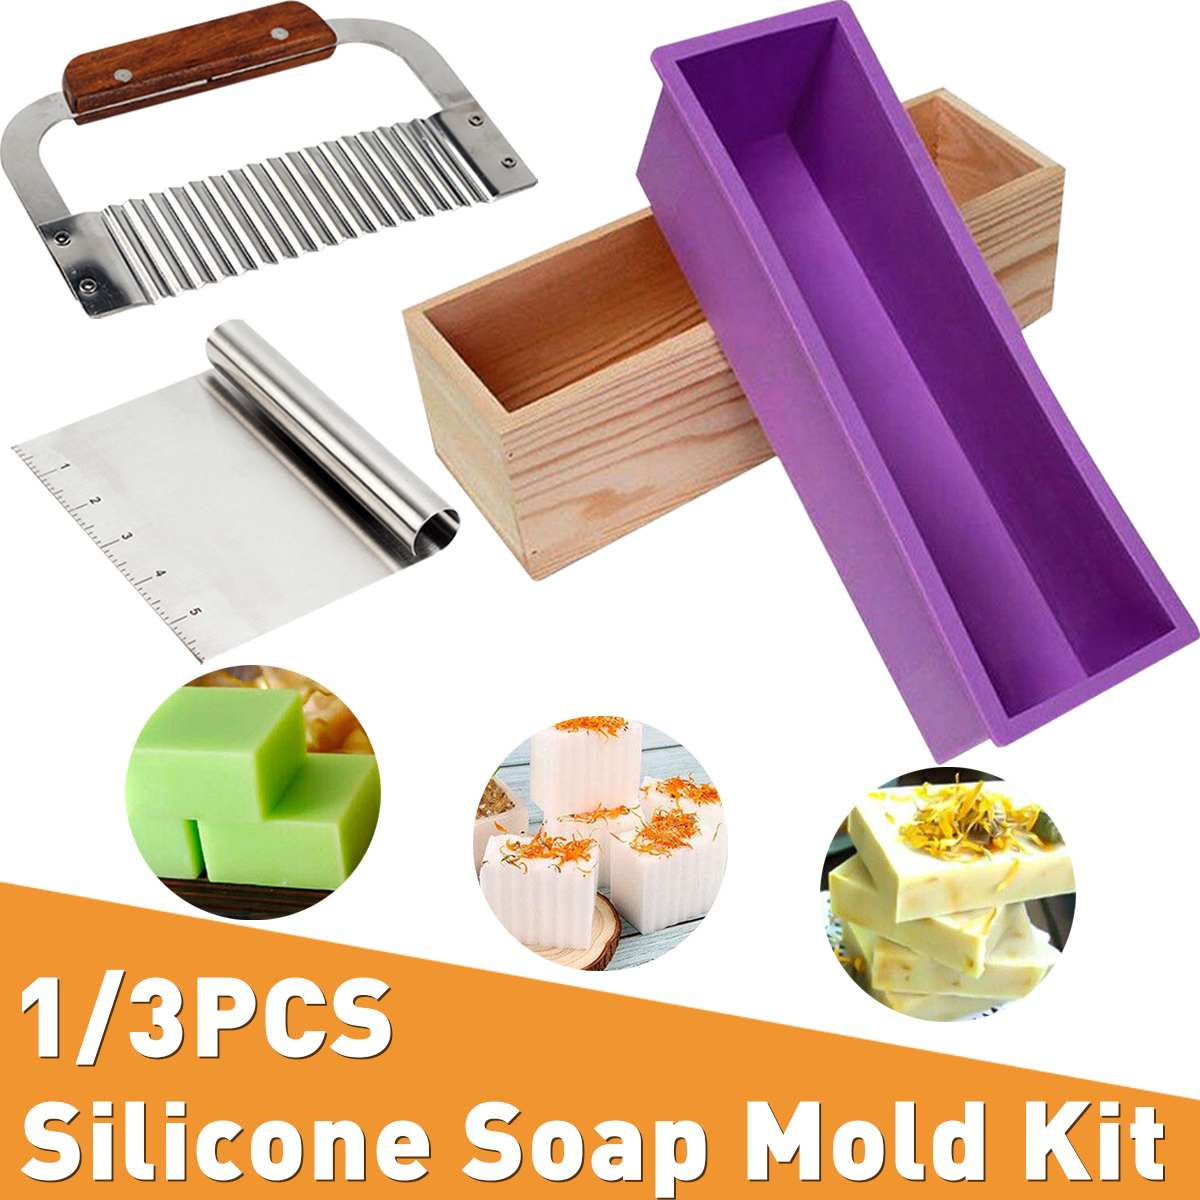 Silicone Soap Mold Kit Rectangular Loaf Mold With Wood Box Soap Cutter Stainless For CP And MP Making Handmade DIY Supplies